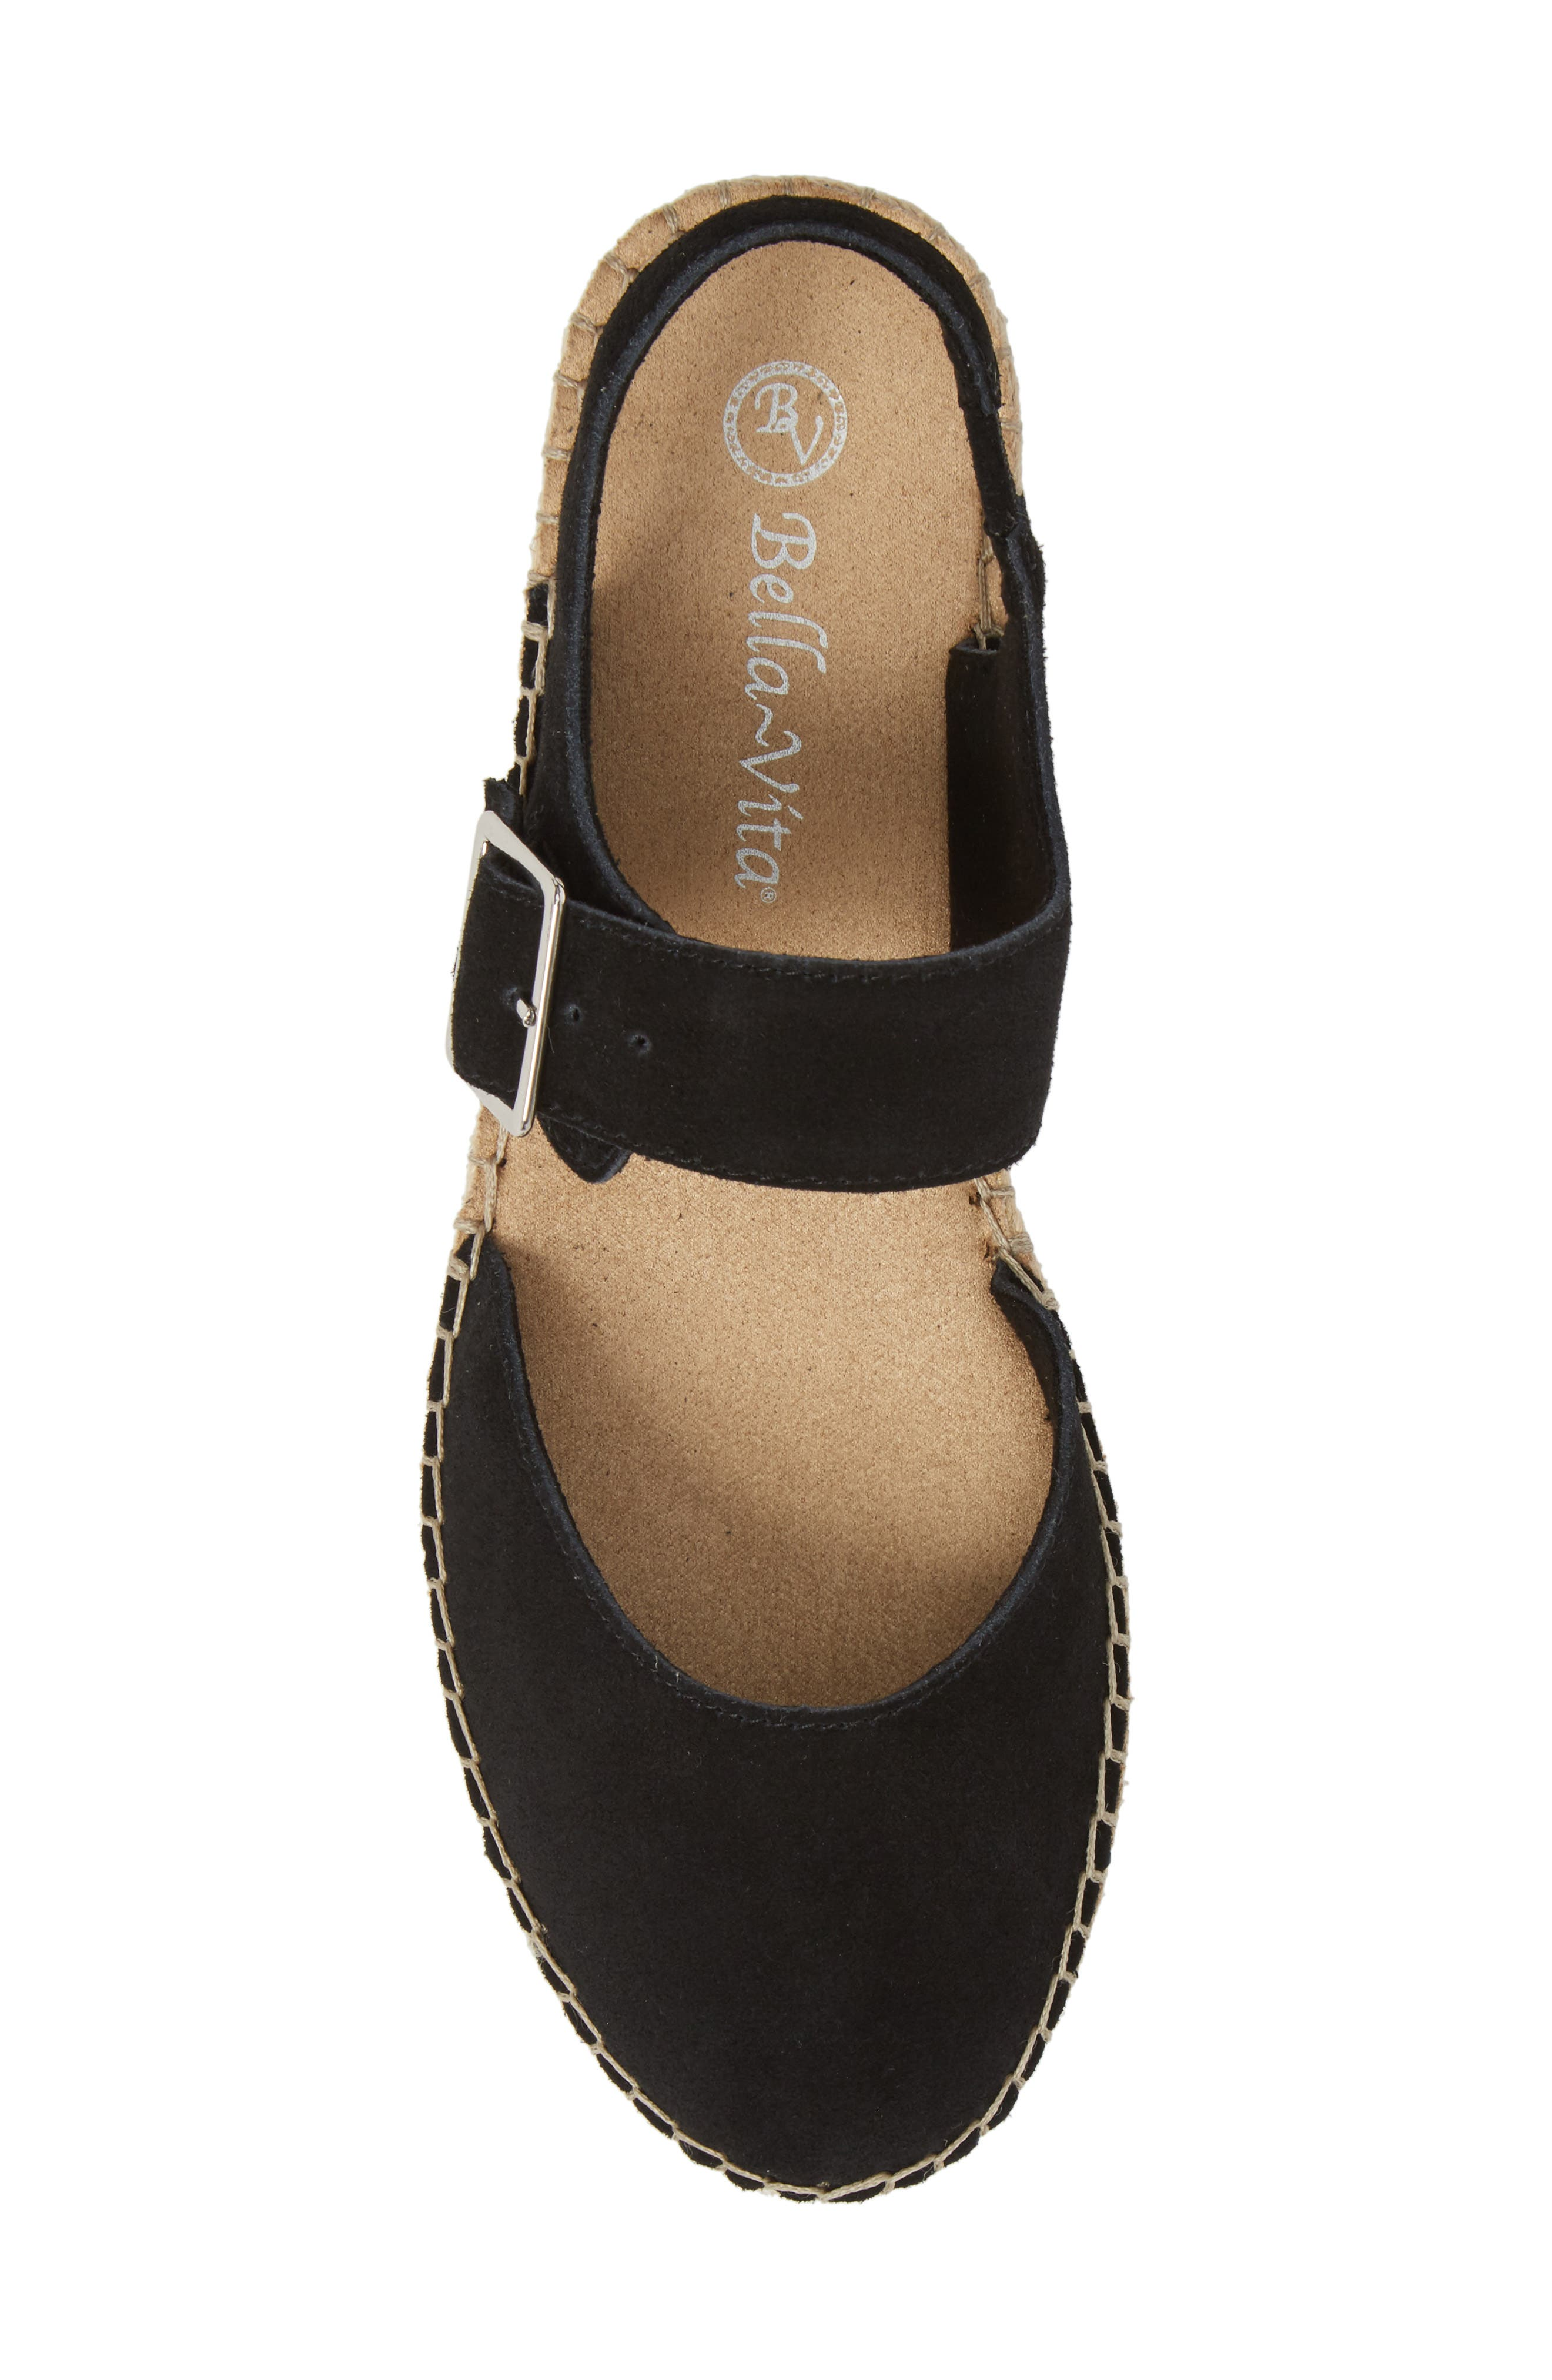 BELLA VITA,                             Caralynn Espadrille Sandal,                             Alternate thumbnail 5, color,                             018